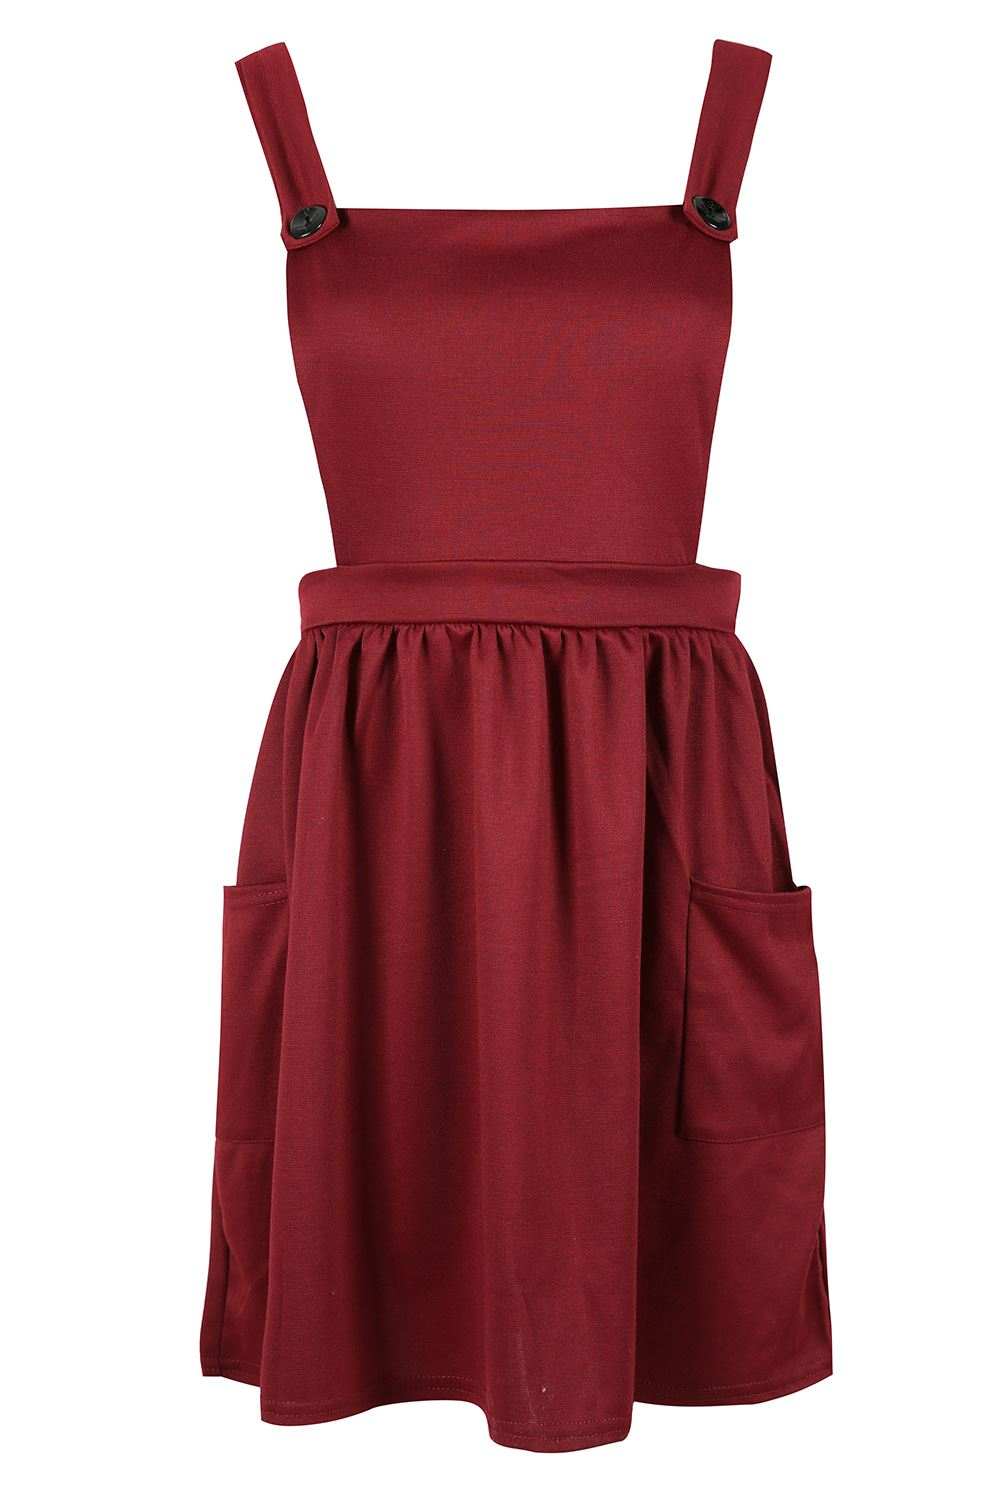 Womens-Ladies-Dungarees-Pinafore-Cross-Back-Strappy-Skater-Flared-Dress-Playsuit thumbnail 3